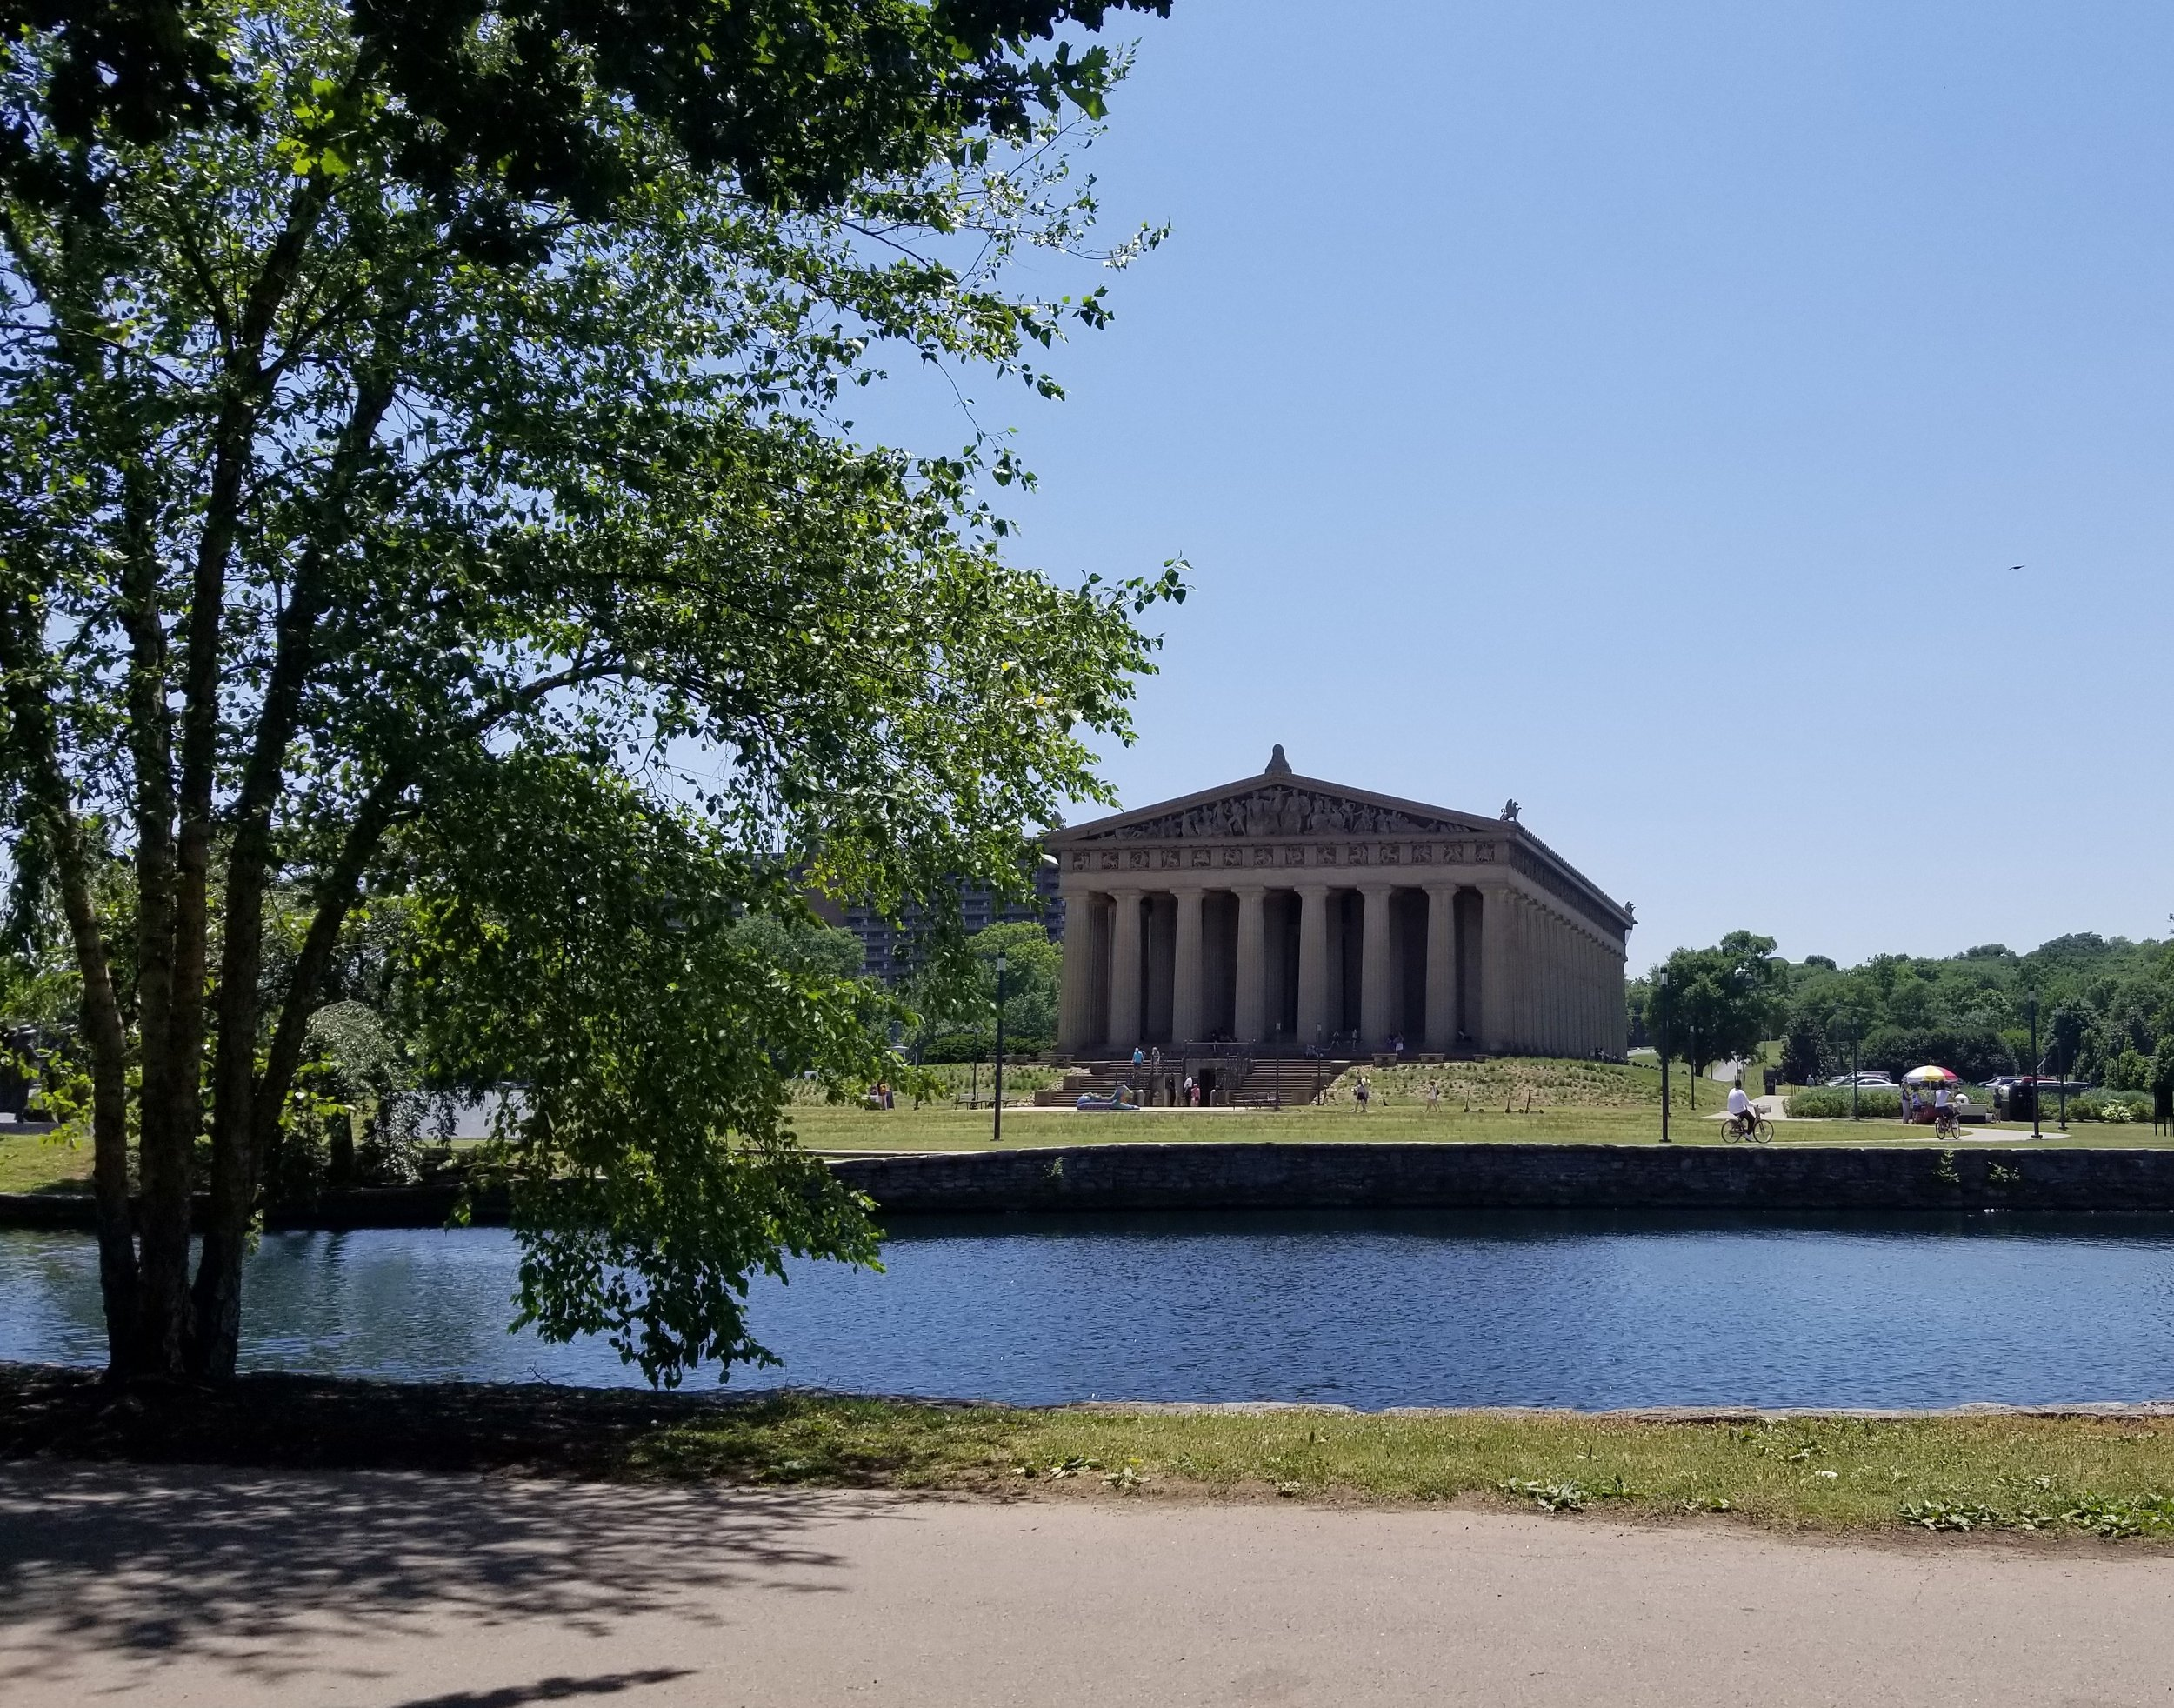 We enjoyed our picnic lunch at the Centennial Park with a view of the Parthenon